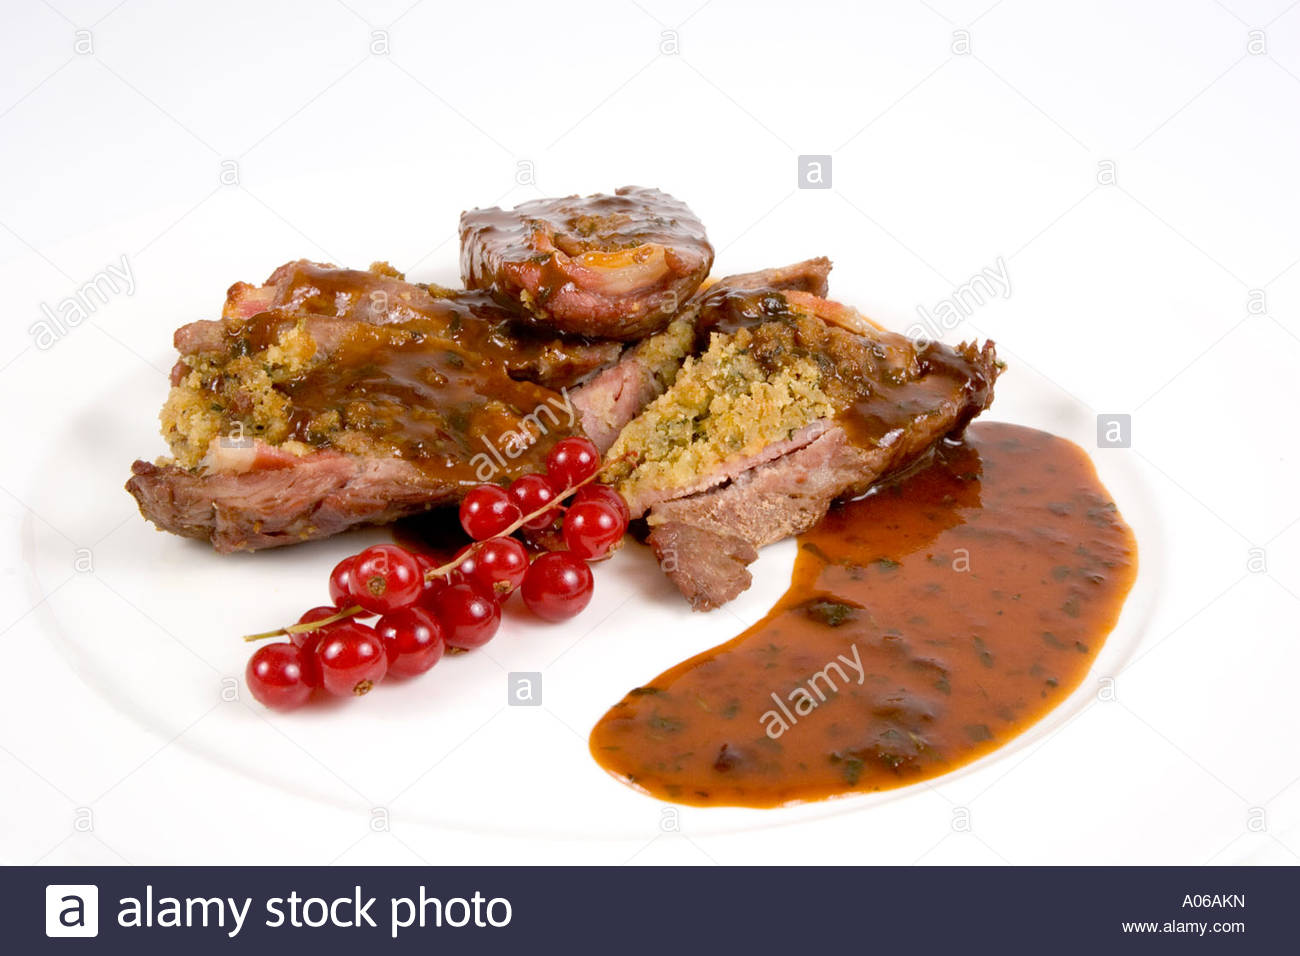 lamb with cranberries - Stock Image